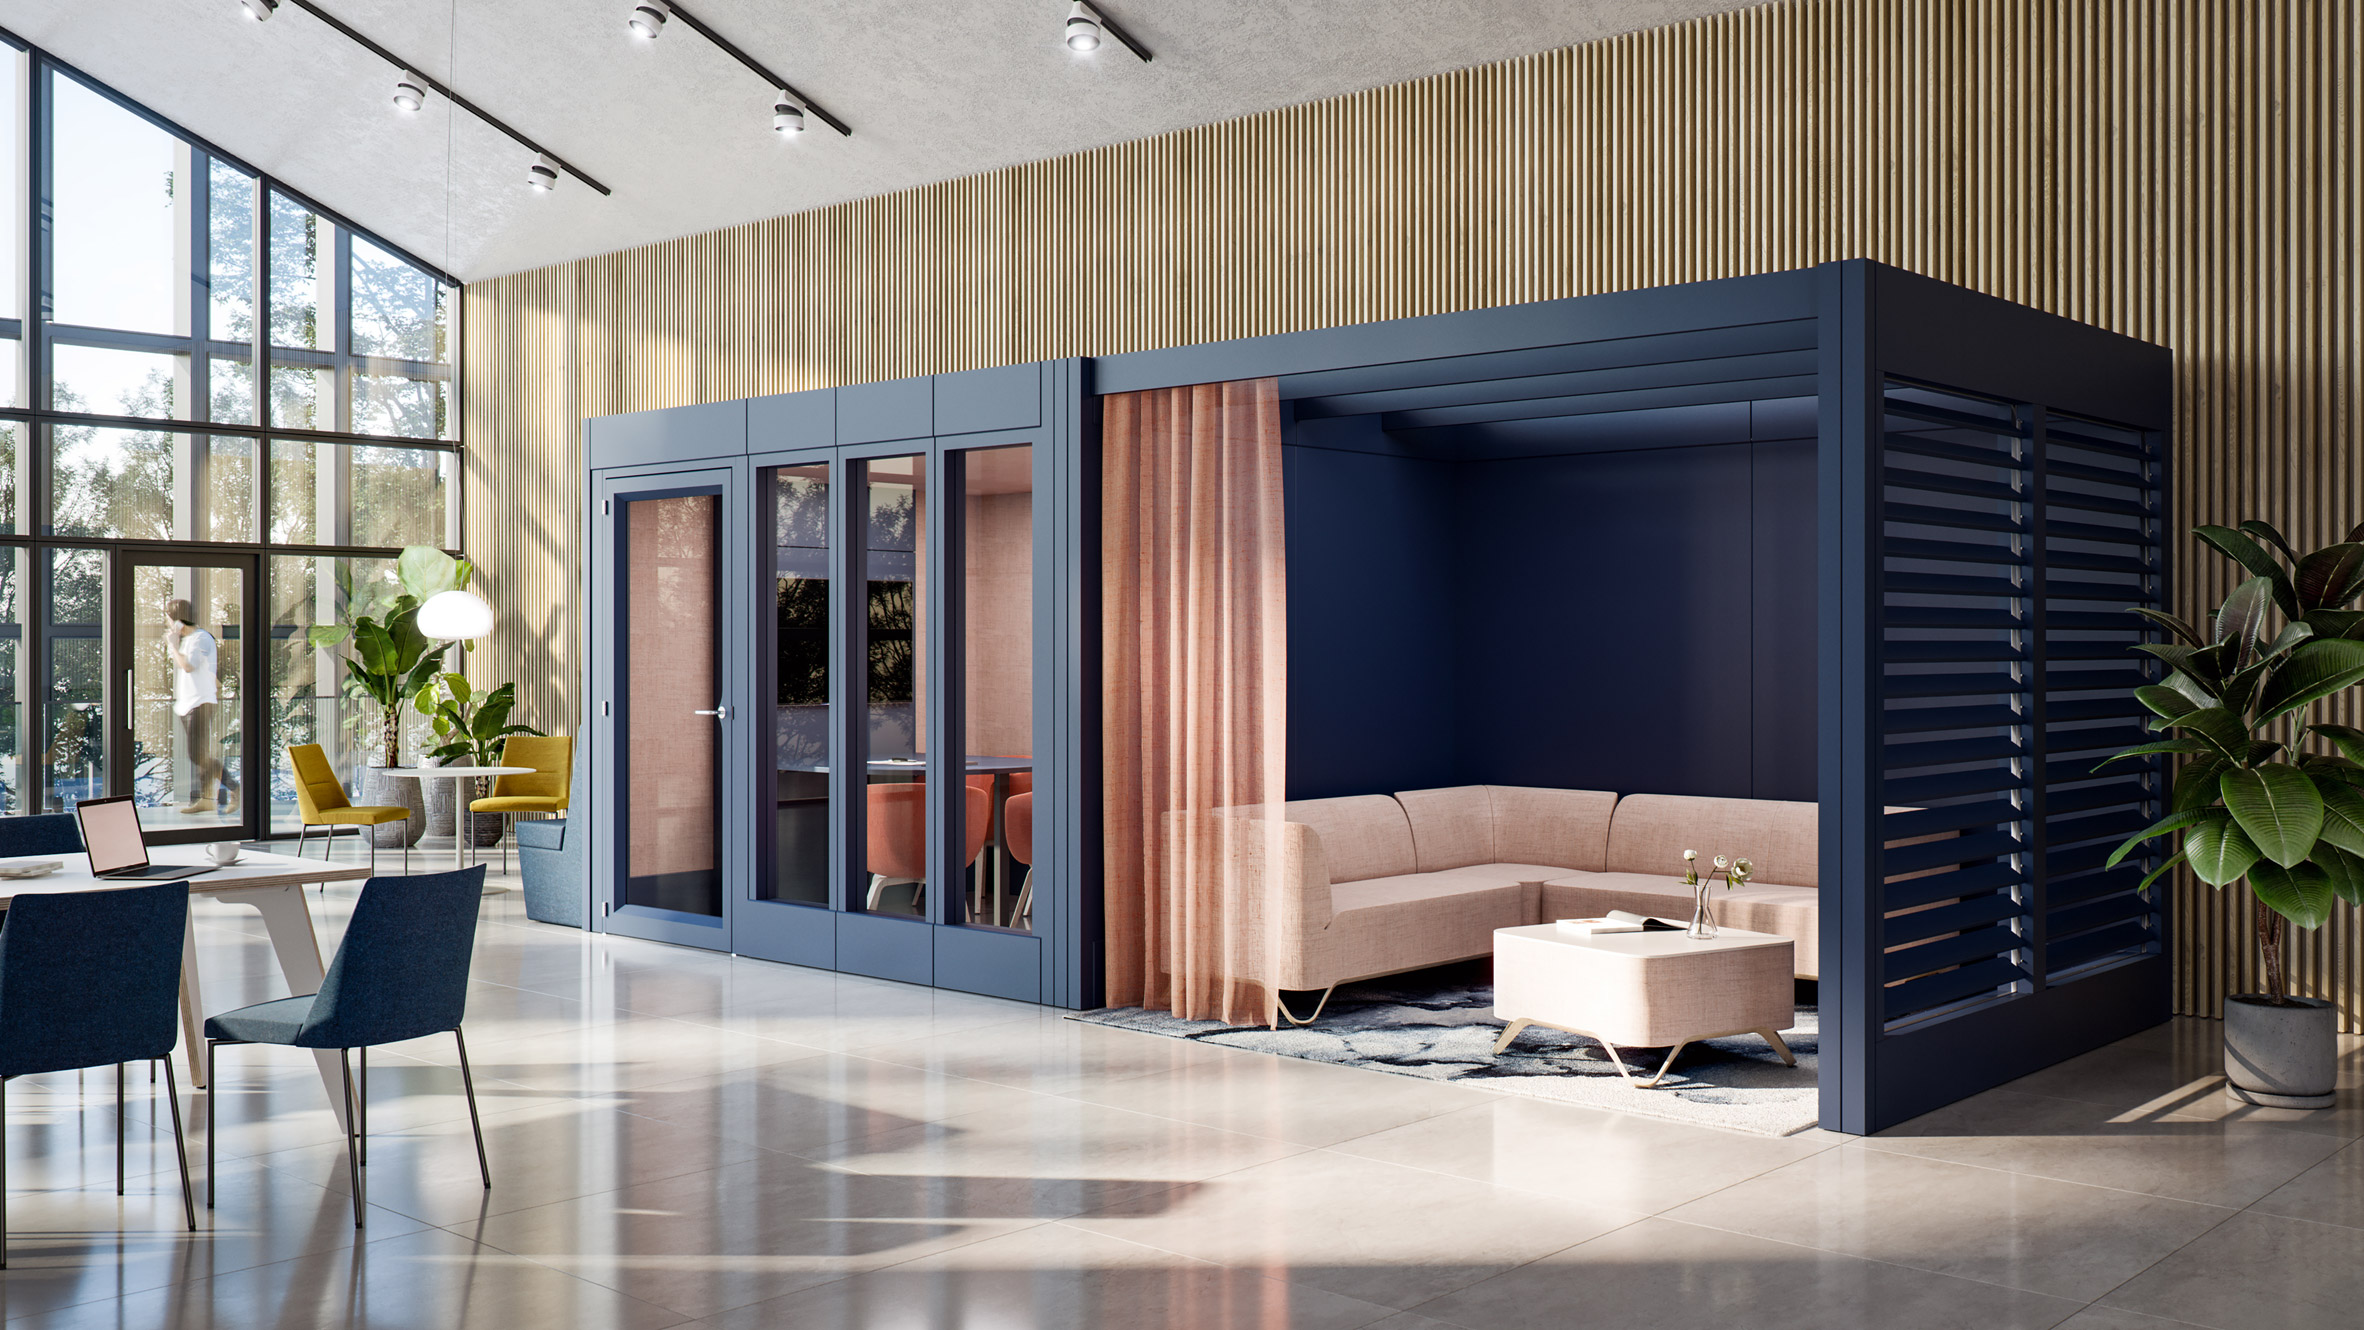 Black meeting room module inserted into an open workspace with a blush pink dividing curtain opening onto a relaxed meeting space with sofas